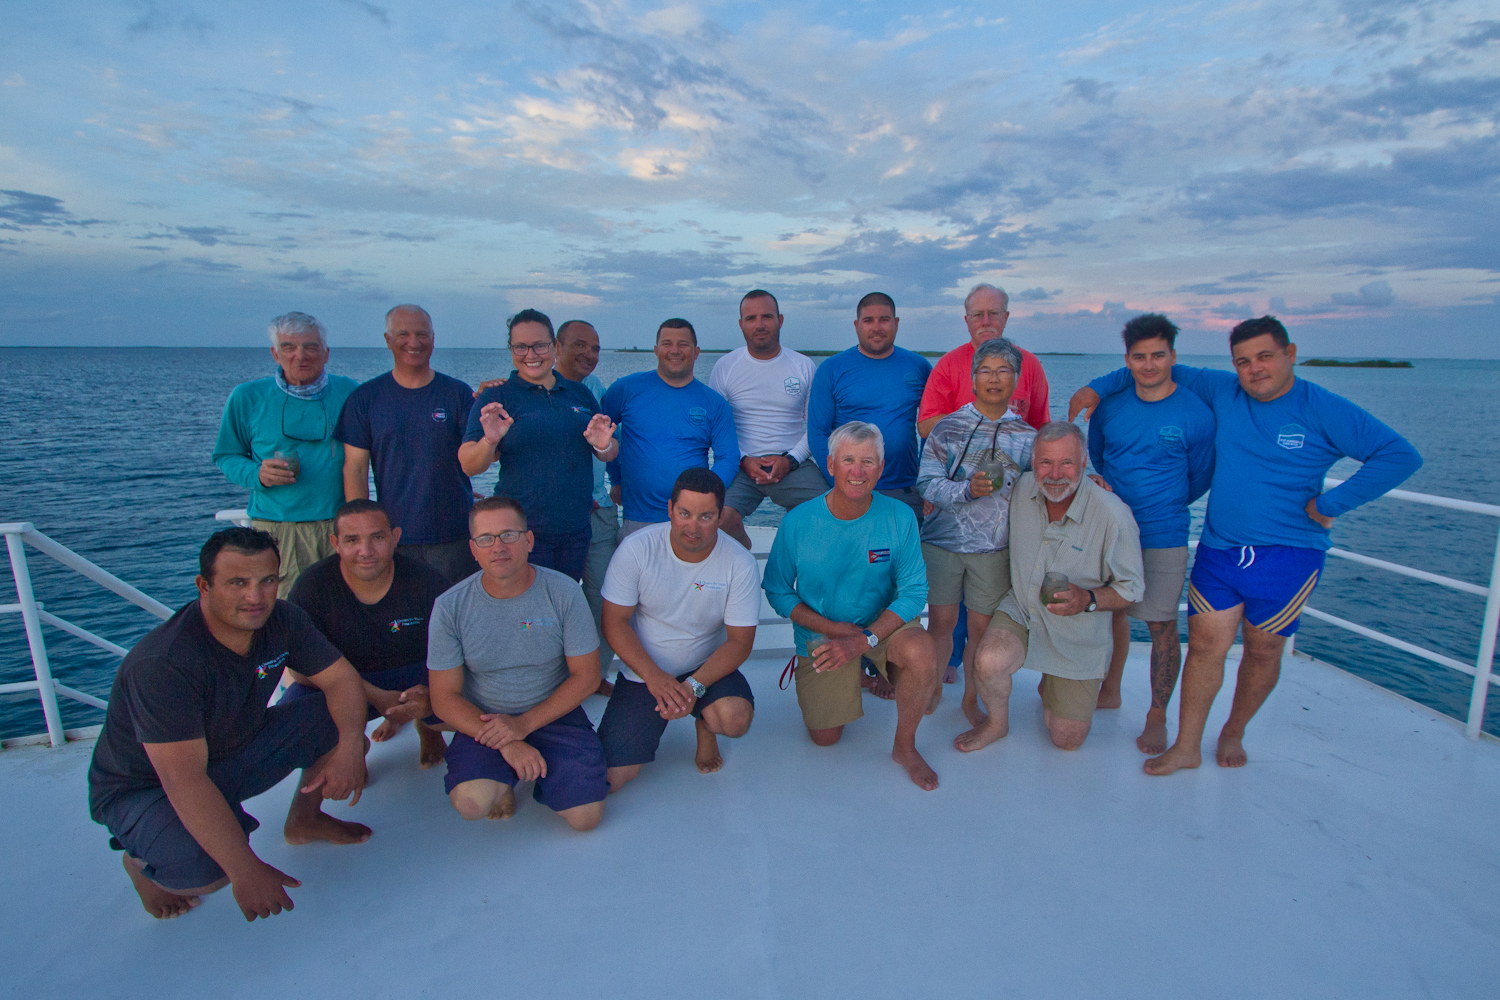 Boat staff, guides, and guests atop the Aggressor